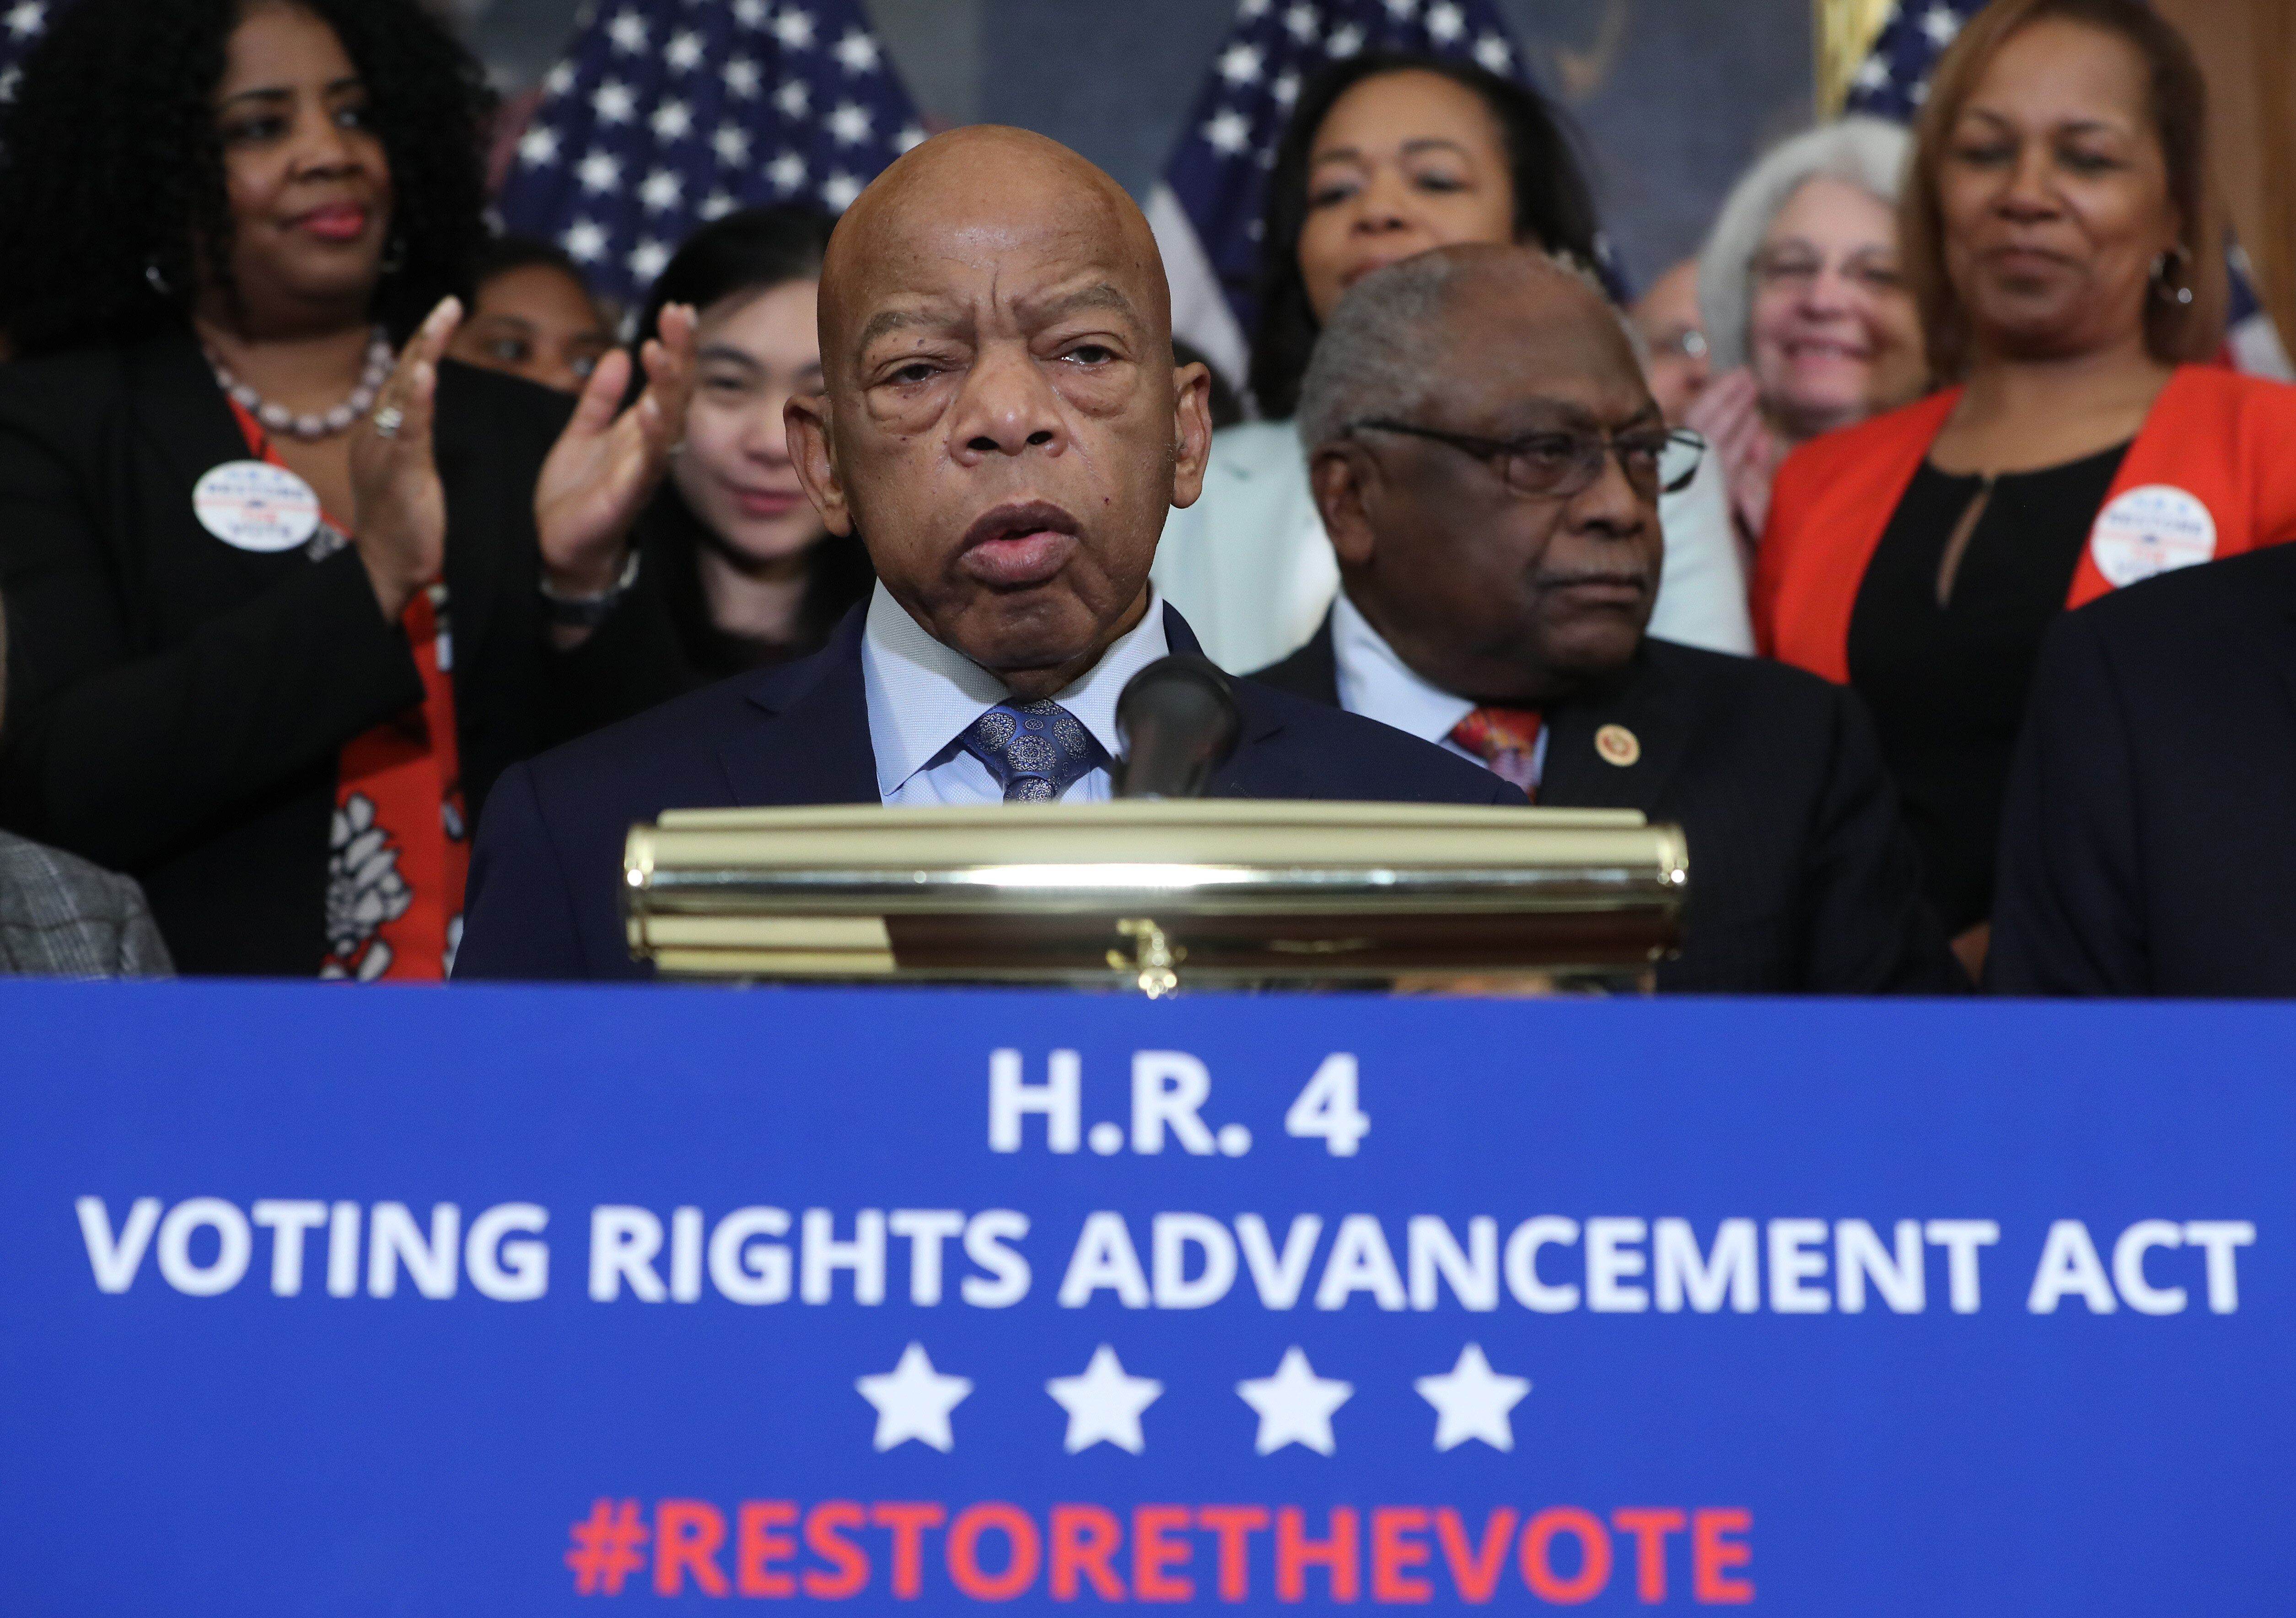 Lewis speaks to the media ahead of the House vote on the Voting Rights Advancement Act on Dec. 6, 2019. The bill would restore the full strength of the Voting Rights Act after a 2013 Supreme Court decision gutted it, unleashing widespread voter suppression.